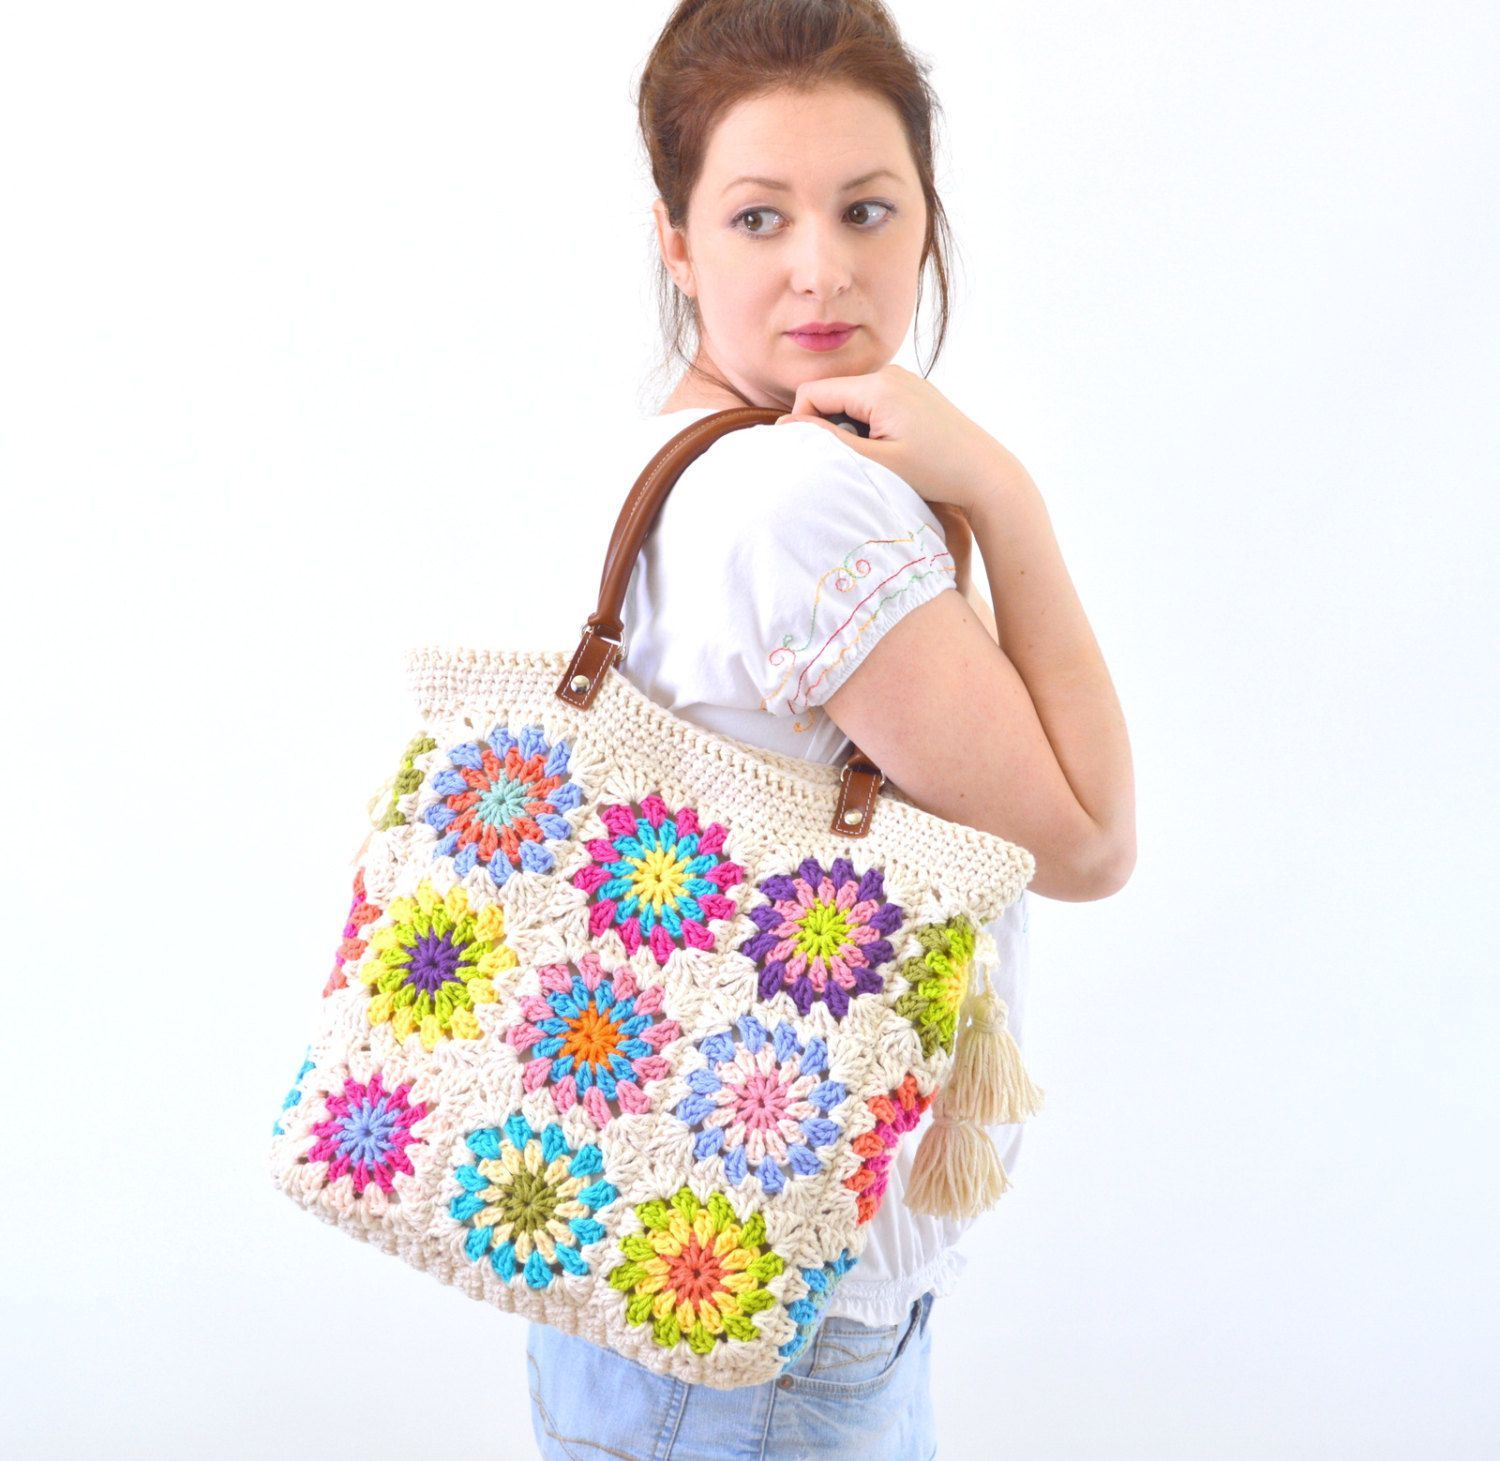 Crochet granny squares handbag with tassels and genuine leather handles Crochet Bag Tote Bag Boho Style Bag Summer Bag by Avaneska on Etsy Making a difference to the bags...